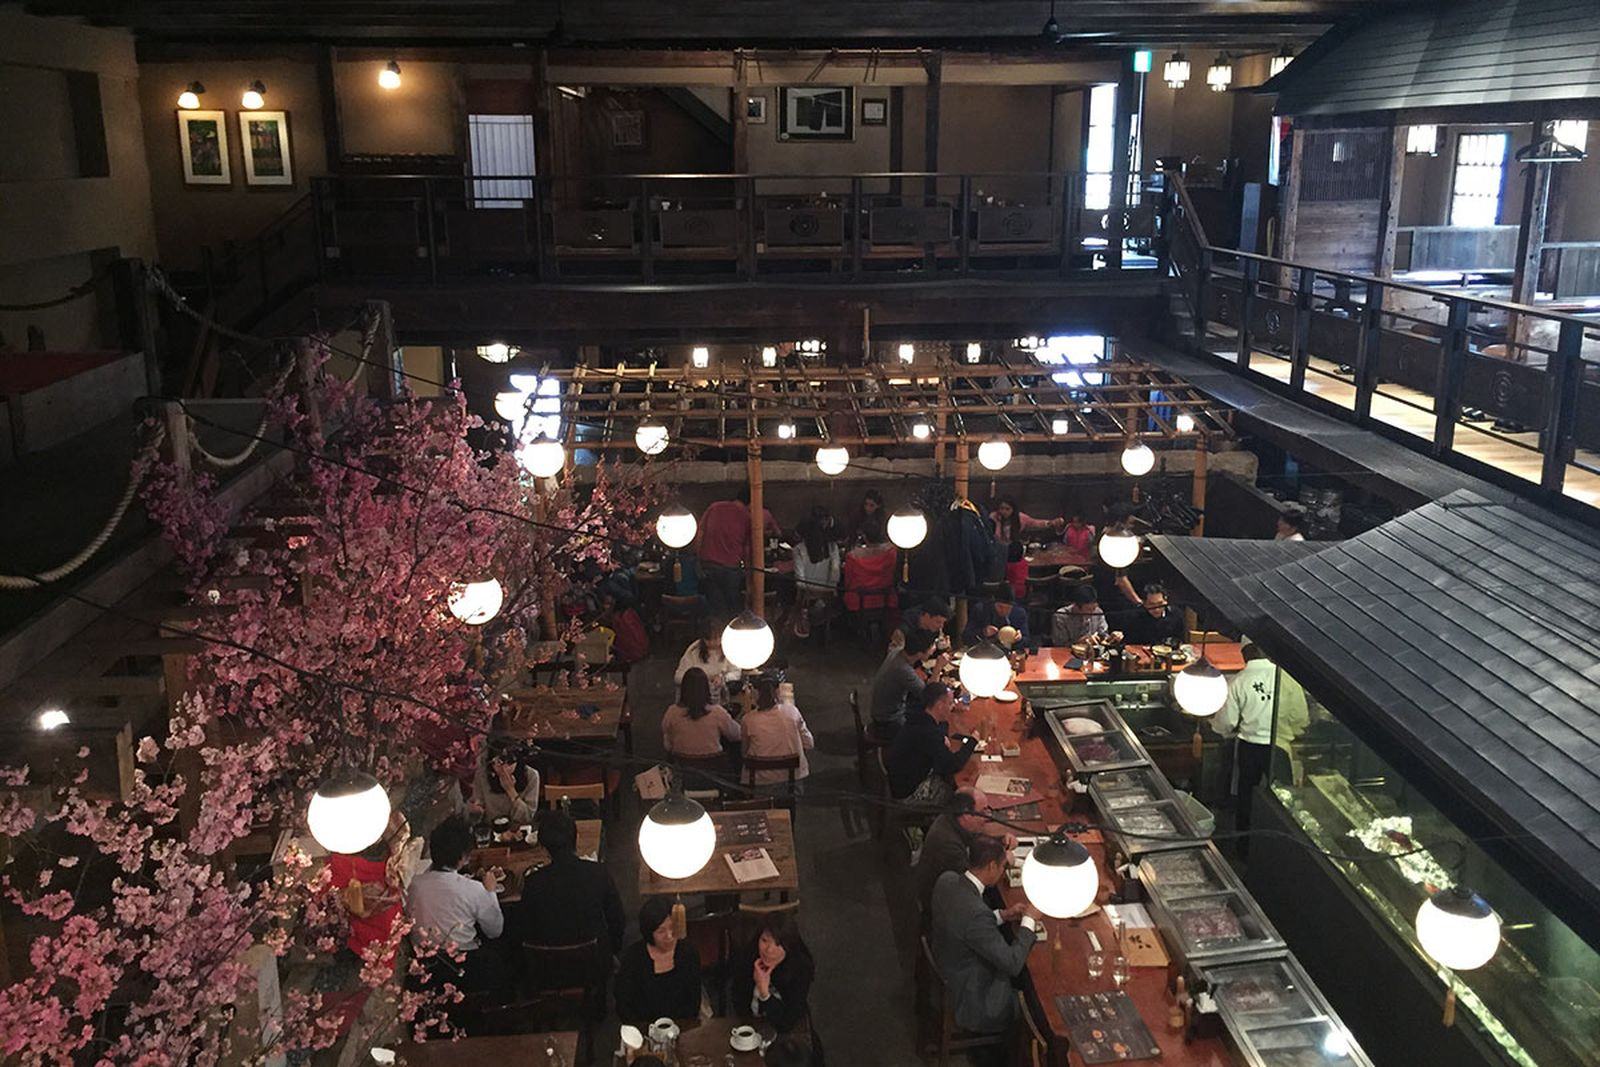 gonpachi prov the real mccoys have a good time